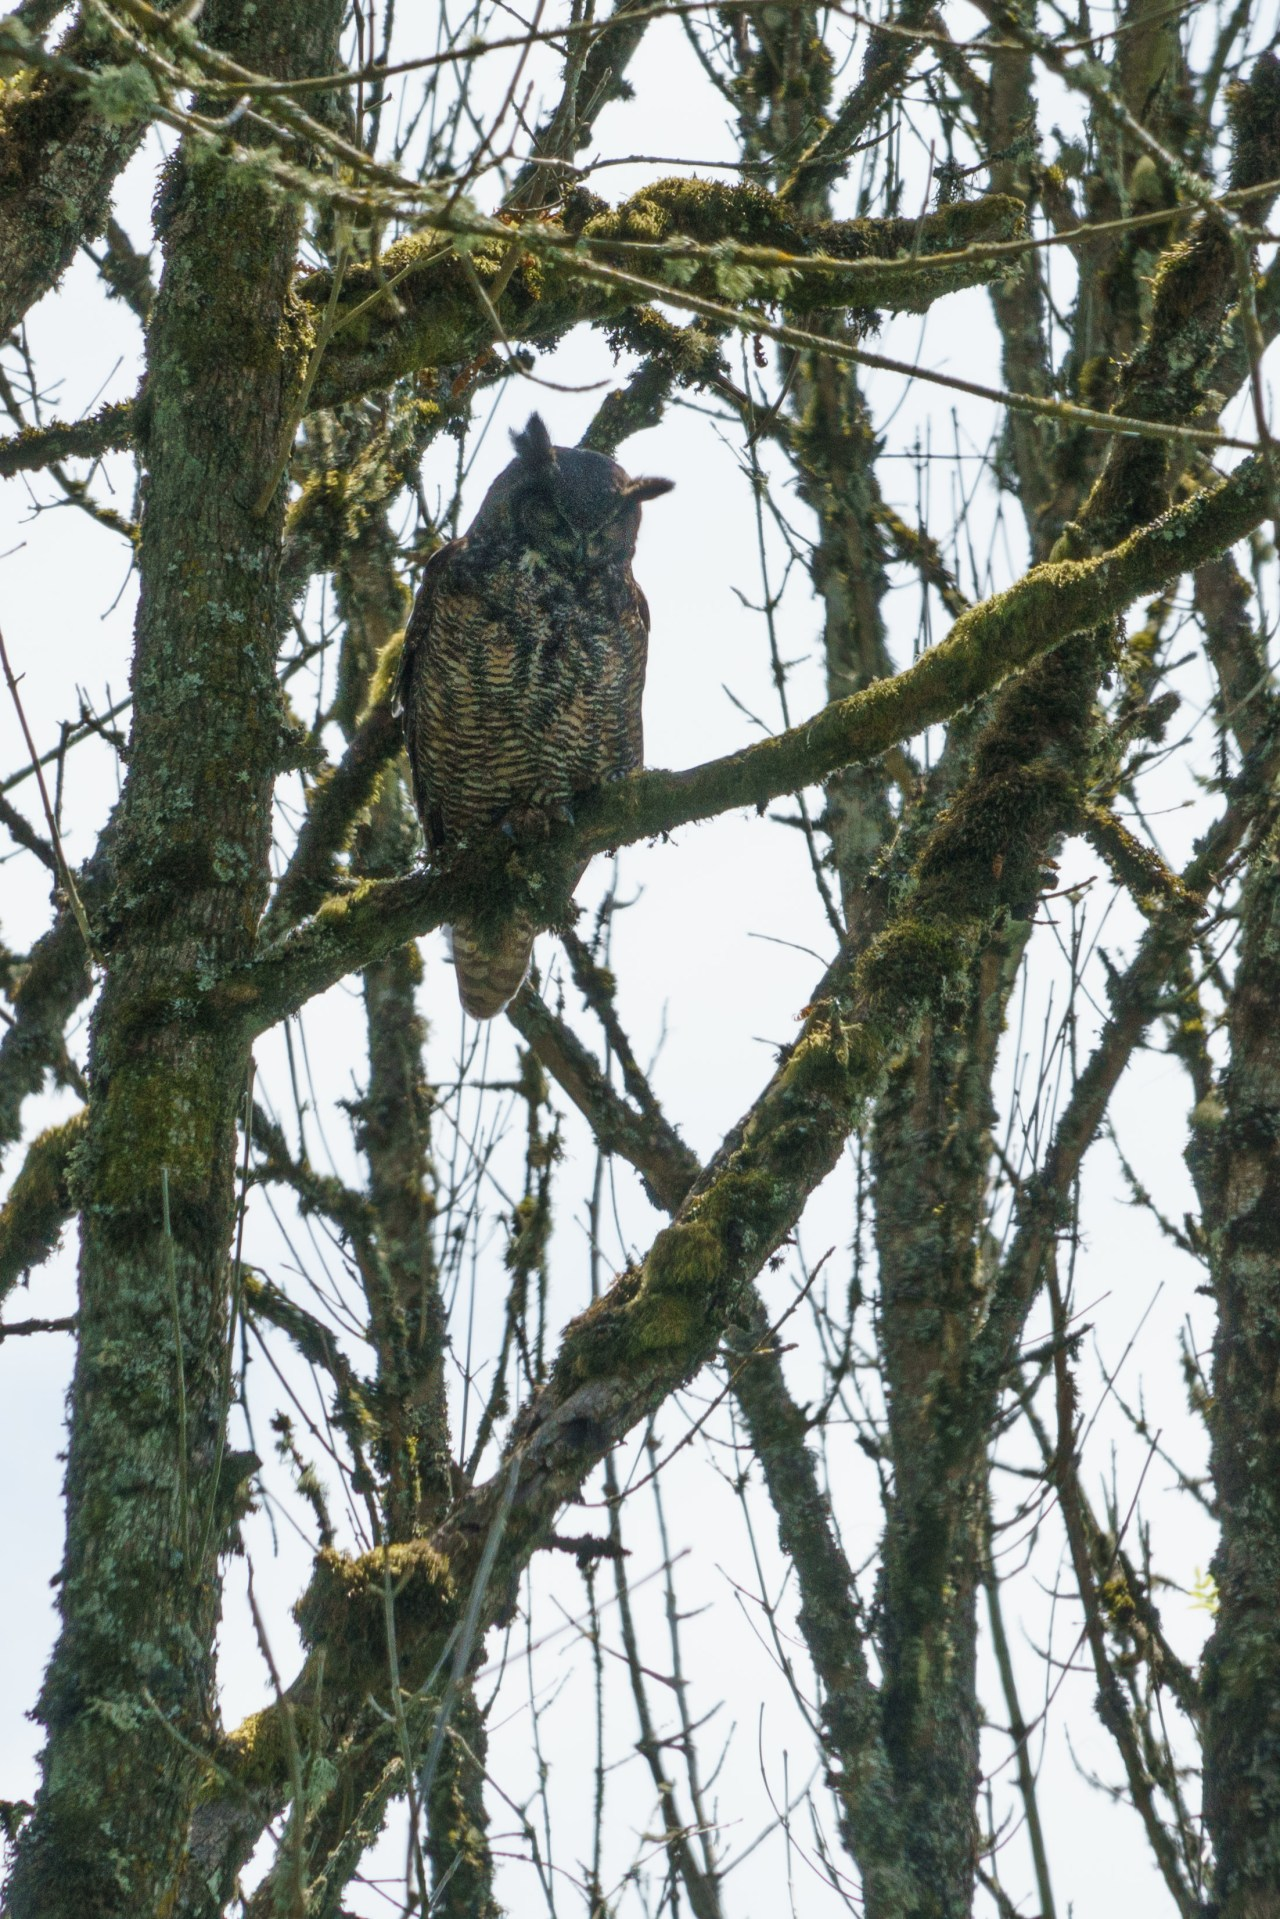 Great horned owl at the Ridgefield Bird Sanctuary